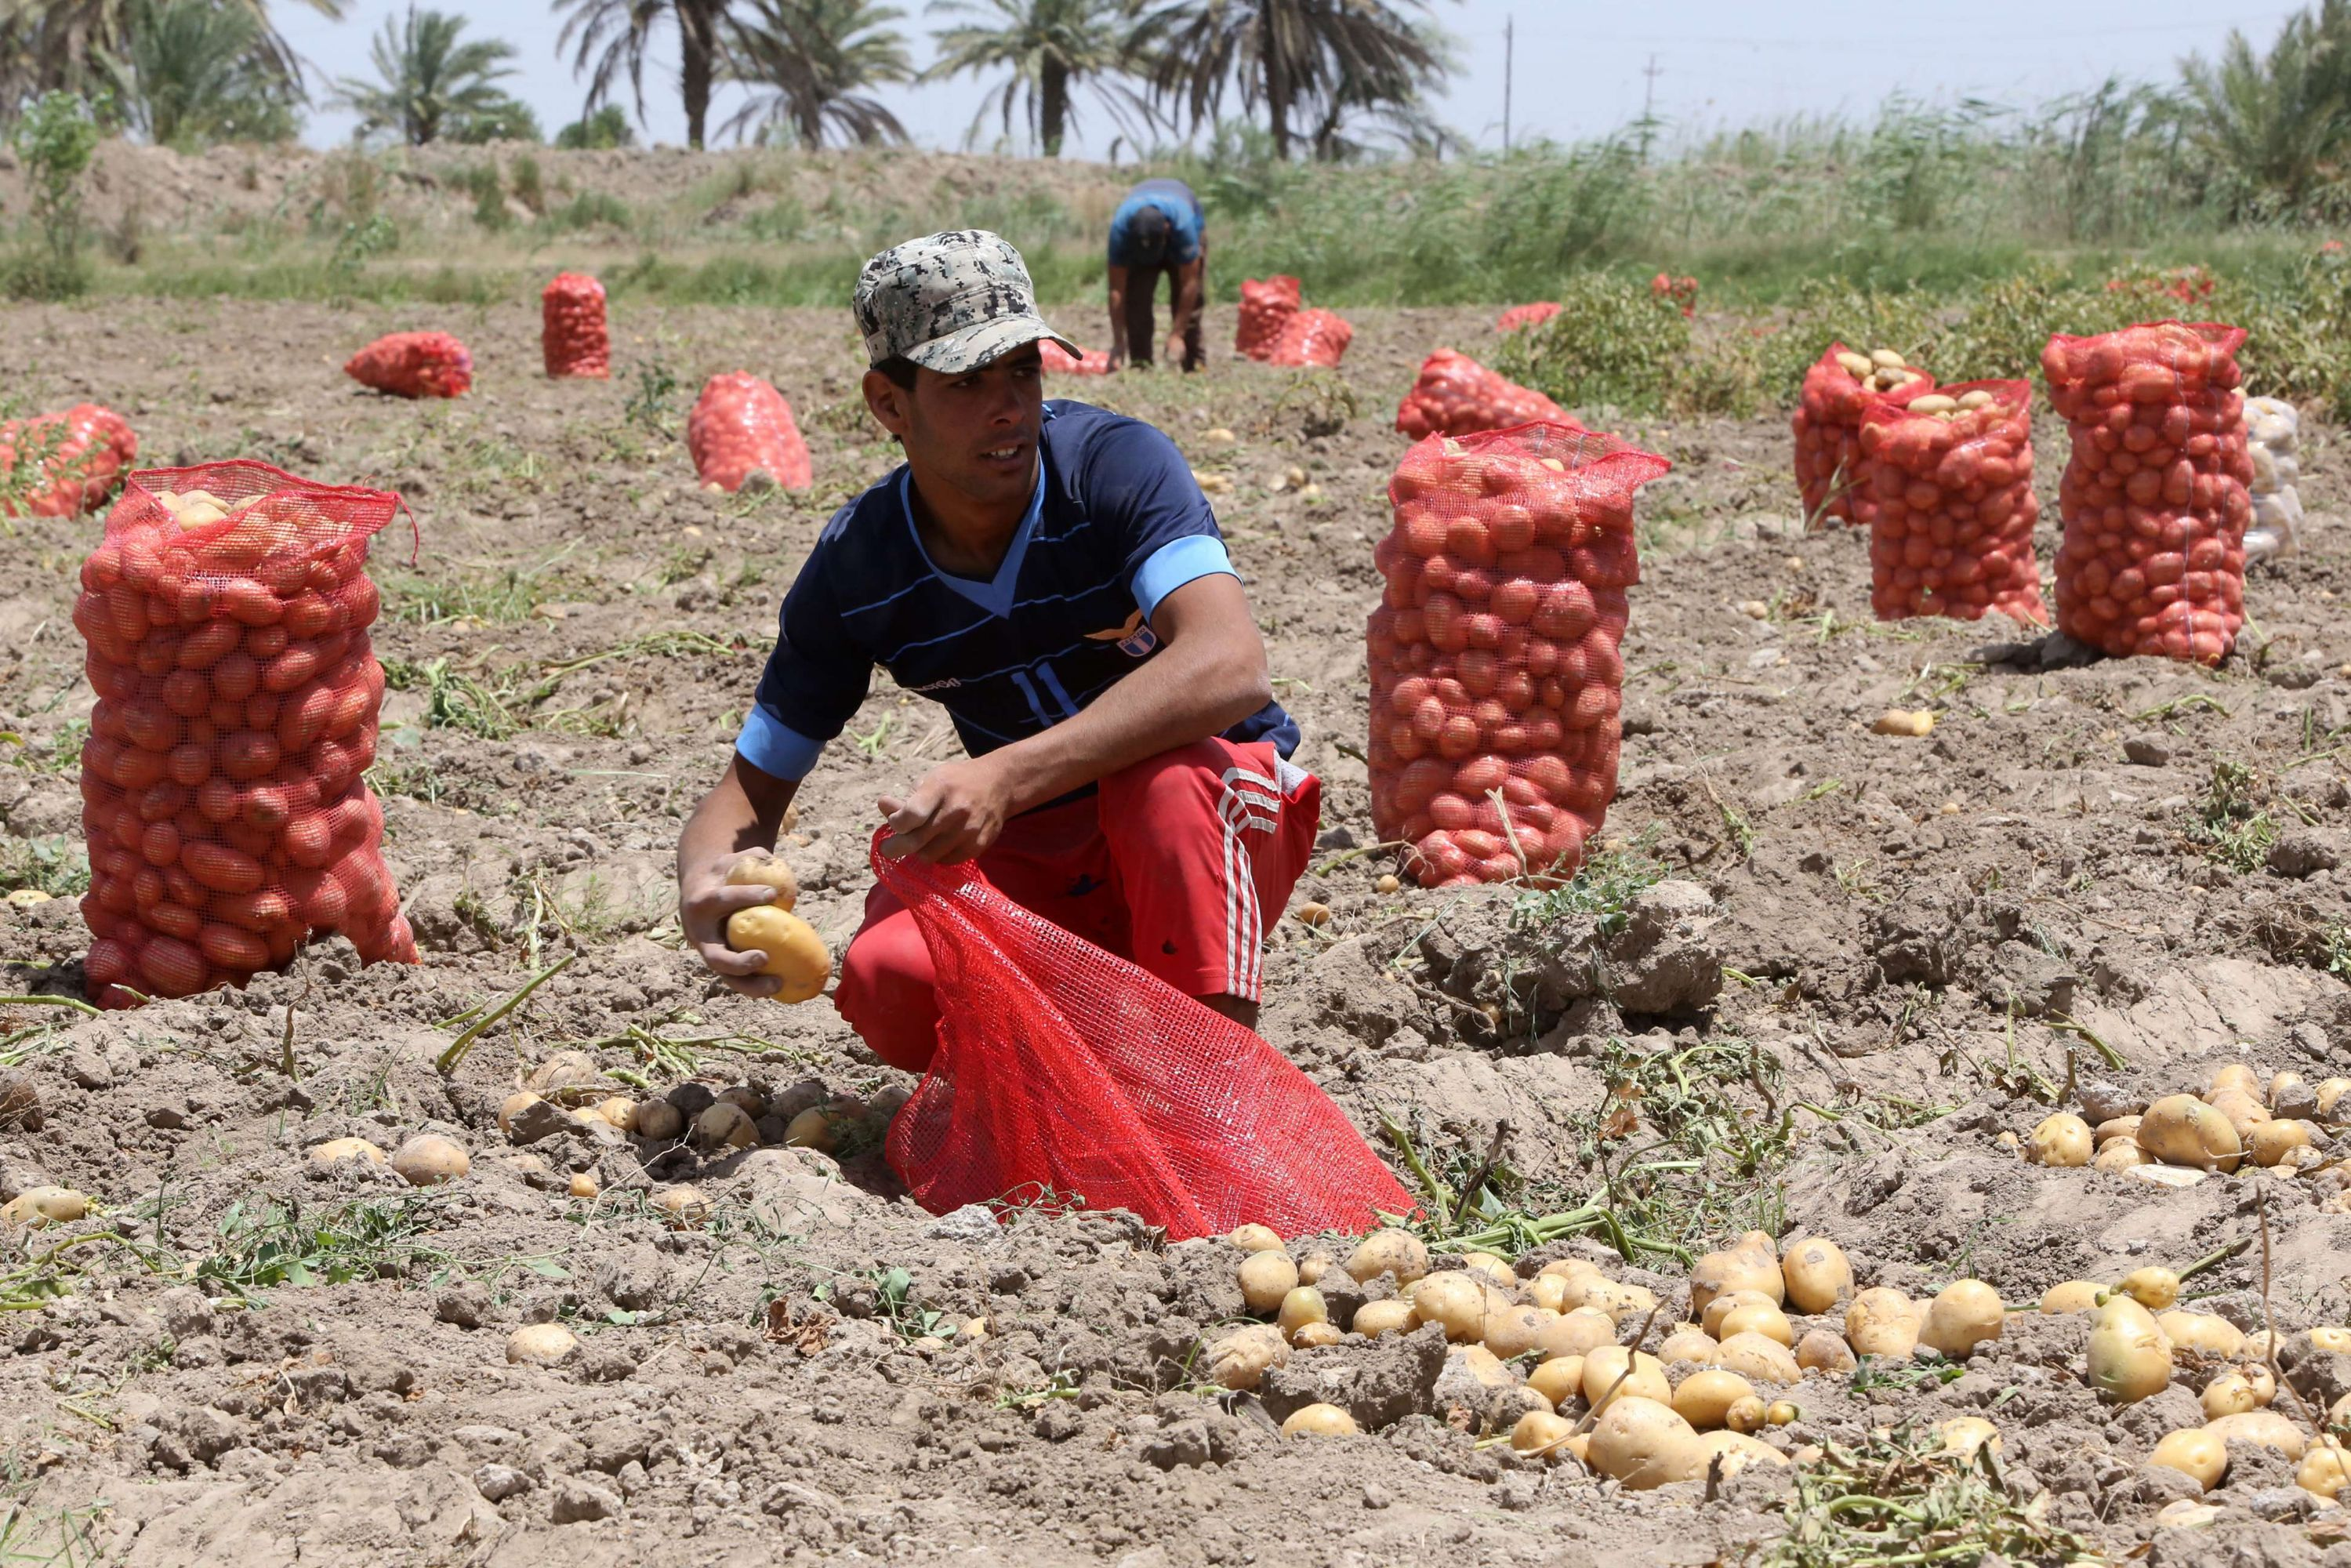 Iraqi farmers collect potatoes from their fields in the village of Yusufiyah around 16kms south of Baghdad. (AFP)